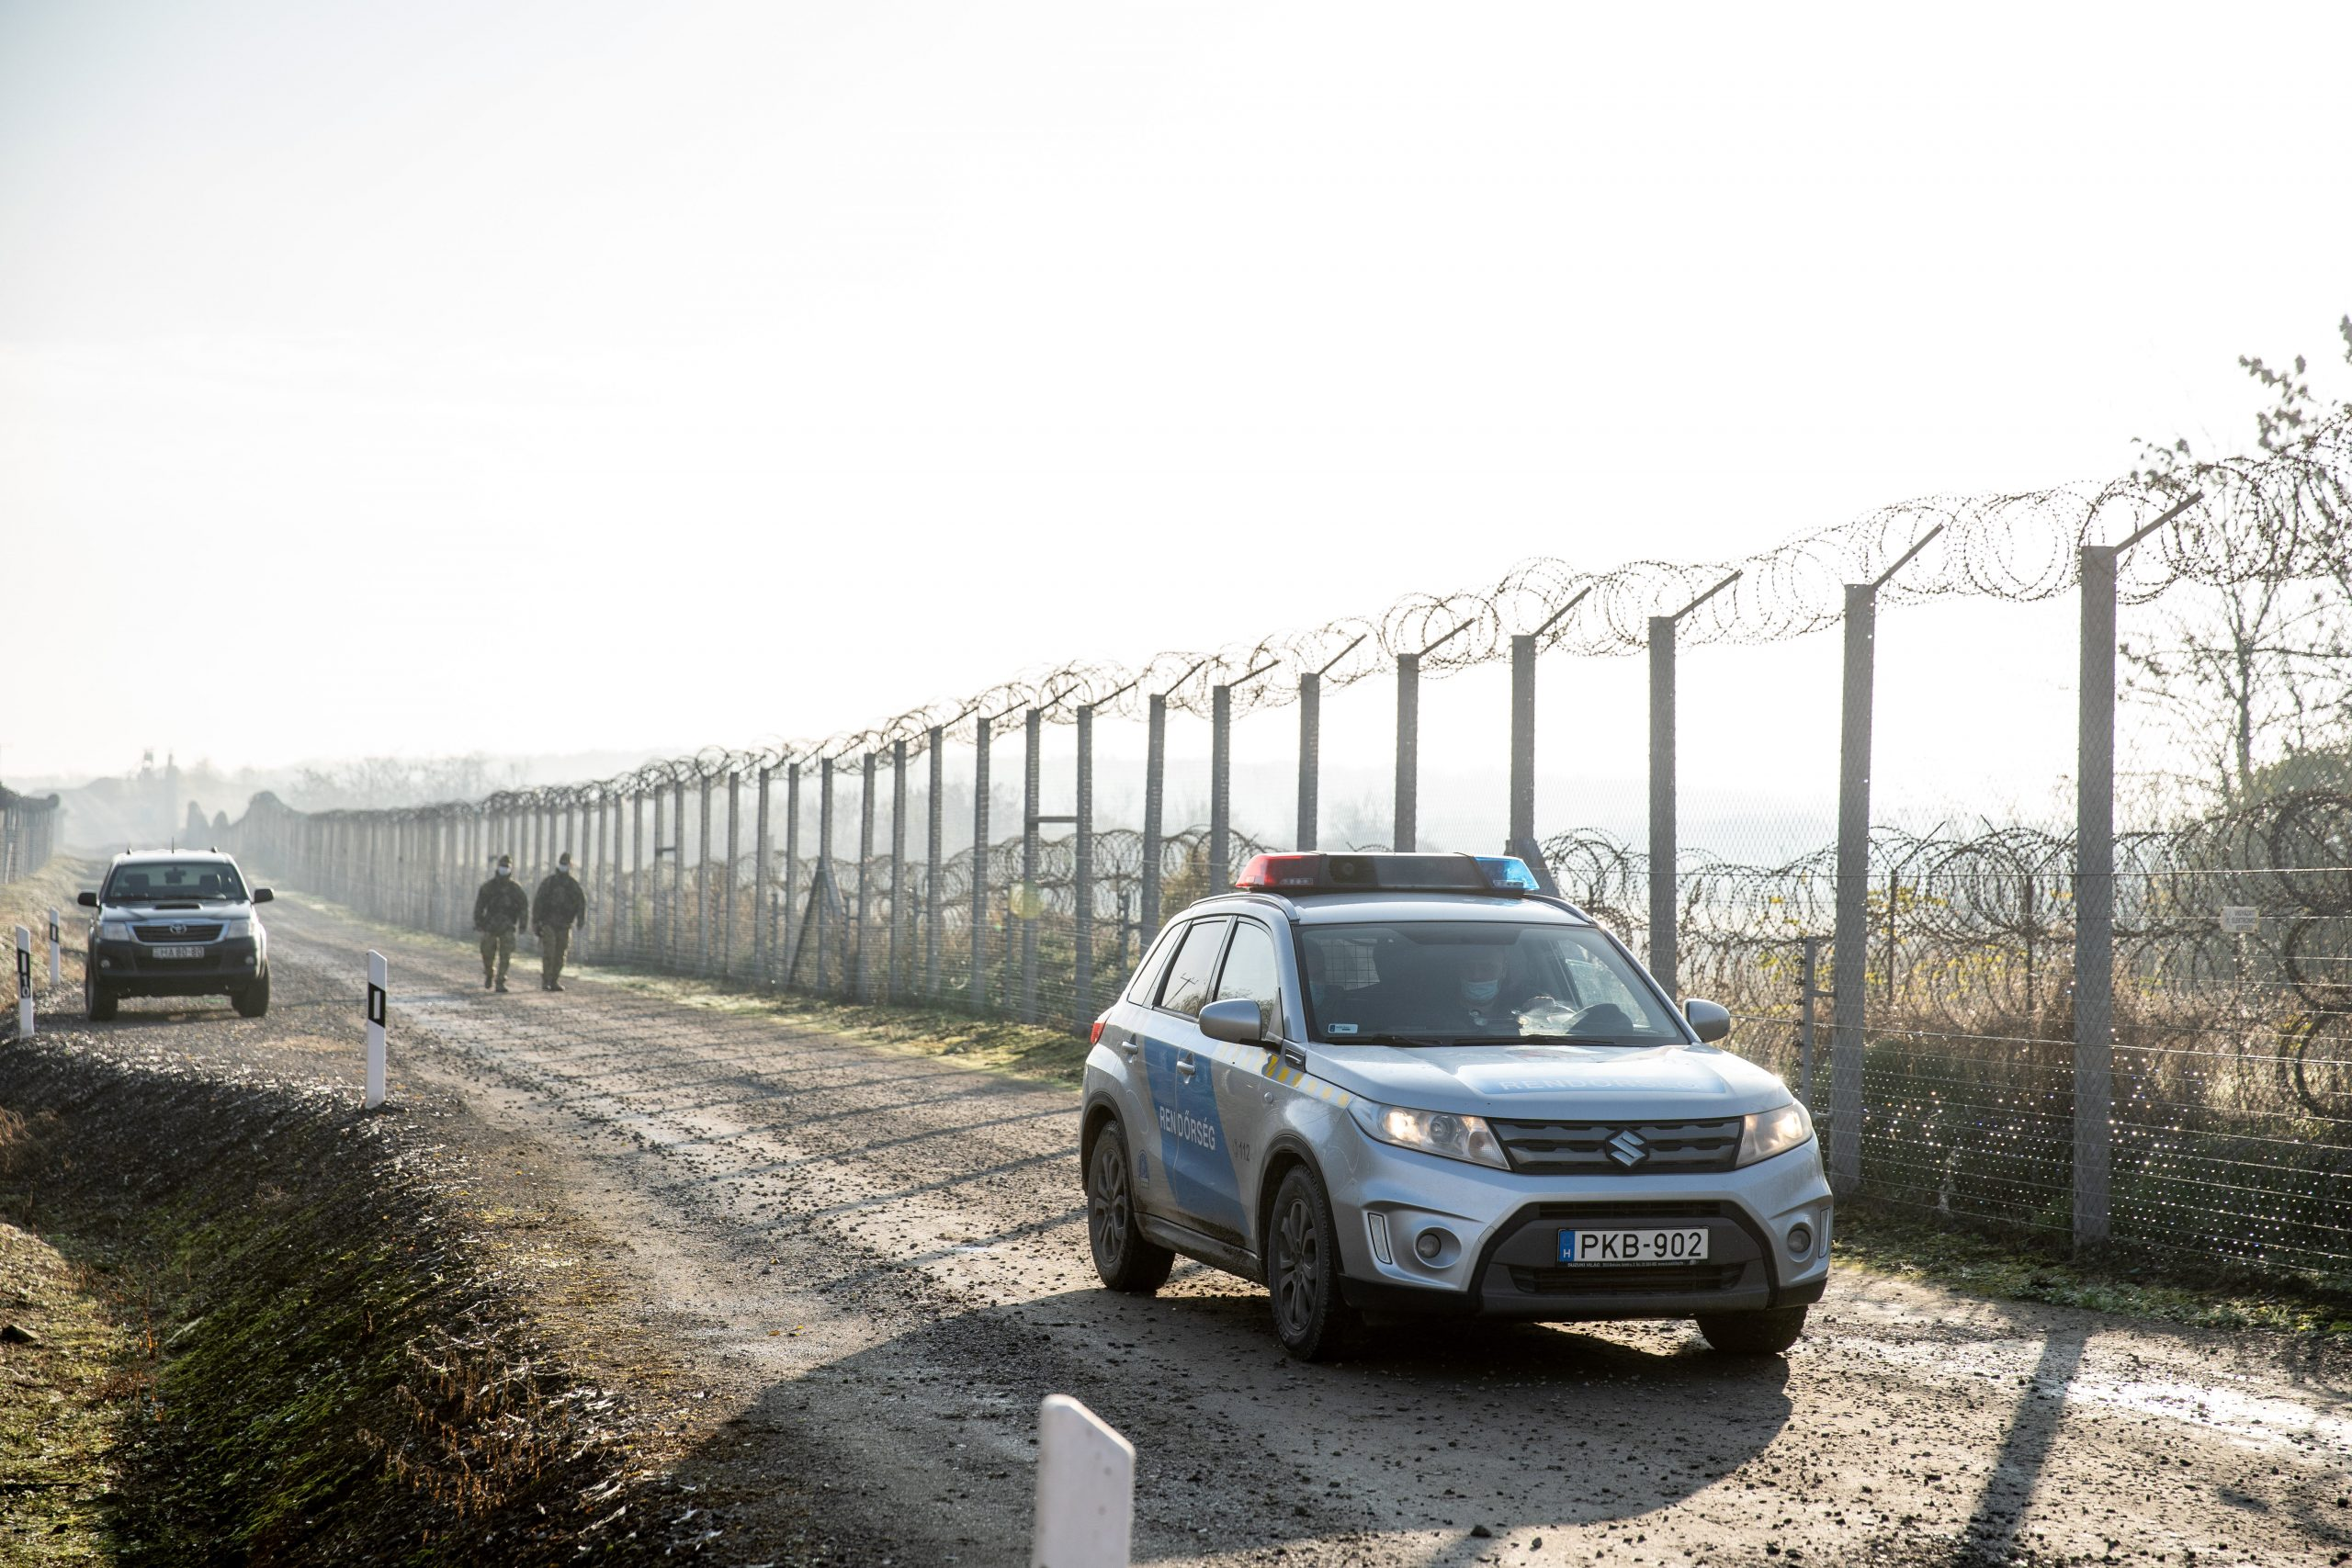 Truck Carrying 68 Migrants Stopped at Hungary-Romania Border